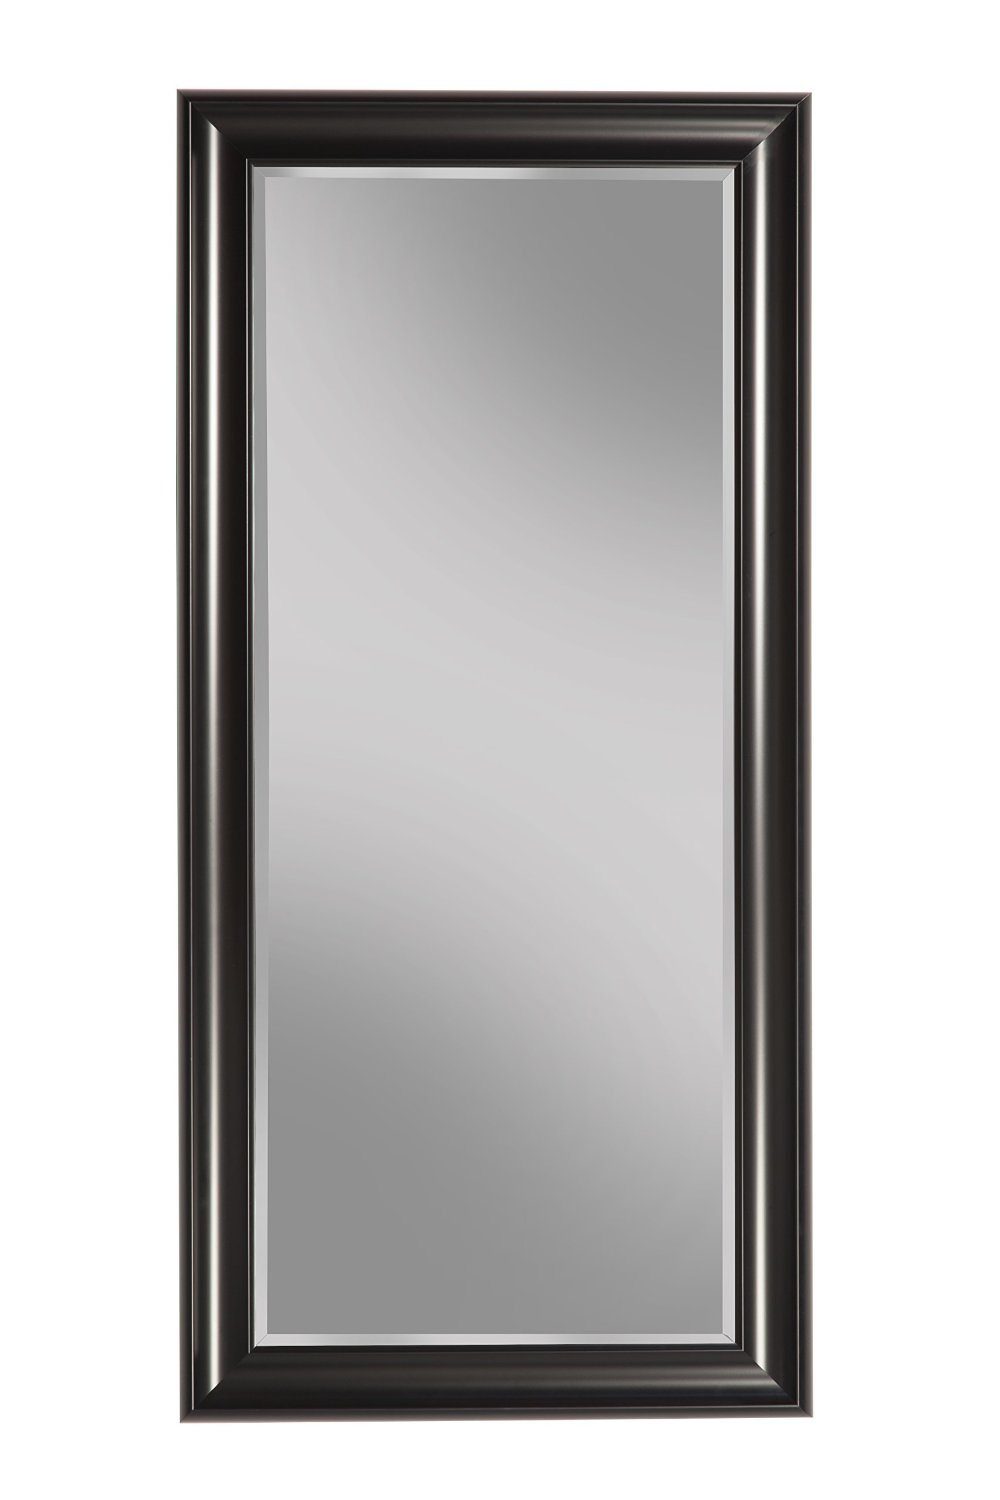 Sandberg Furniture Black Full Length Leaner Mirror